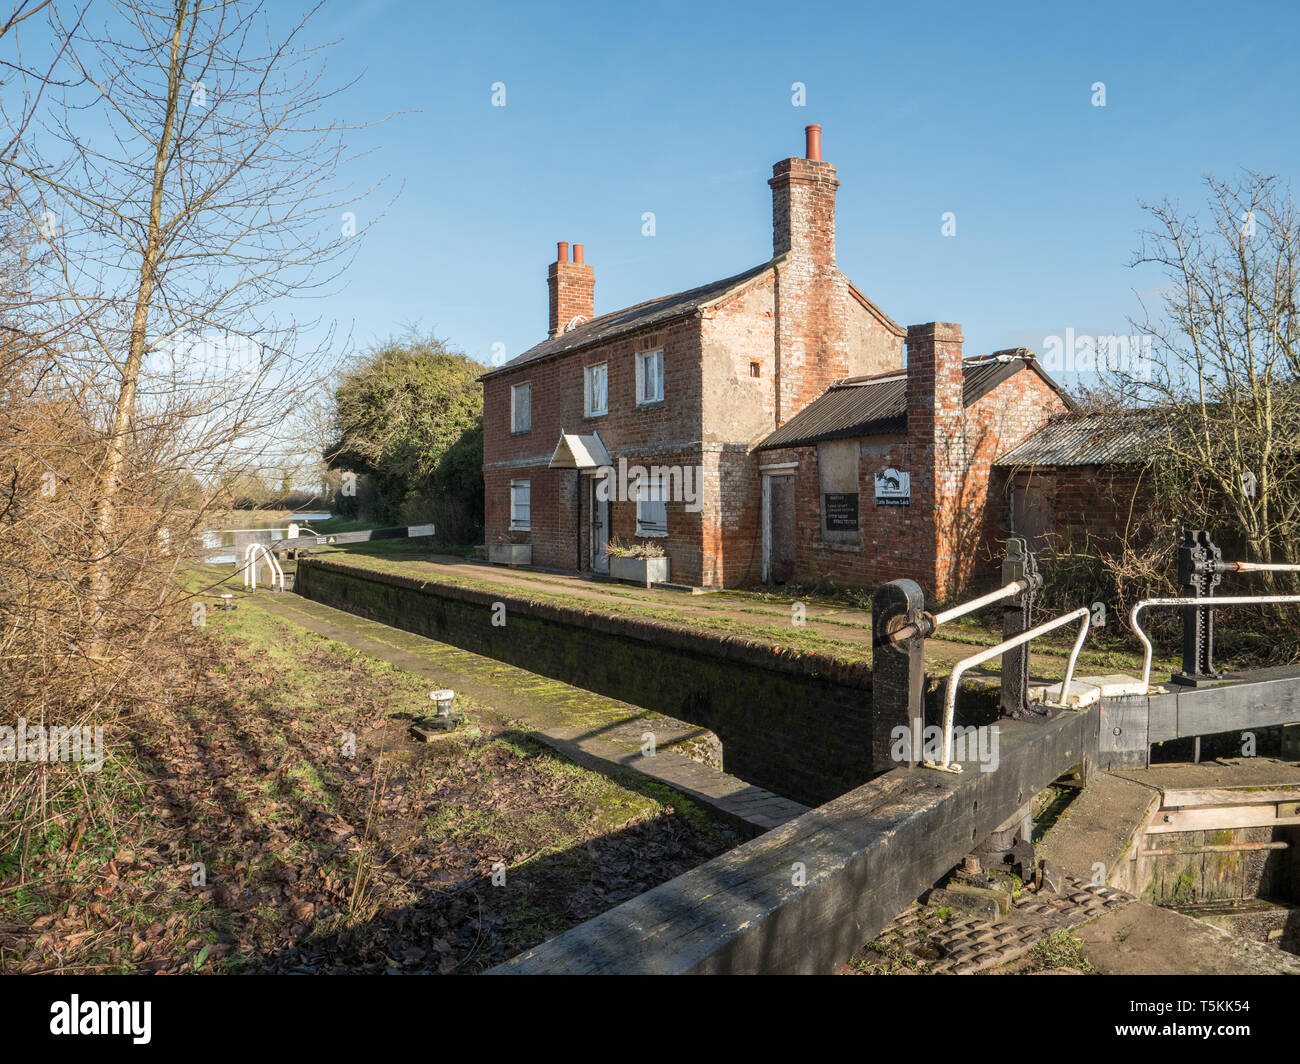 Vacant Lock Keepers Cottage on the Oxford Canal near Little Bourton near Banbury Oxfordshire, England. UK. Stock Photo